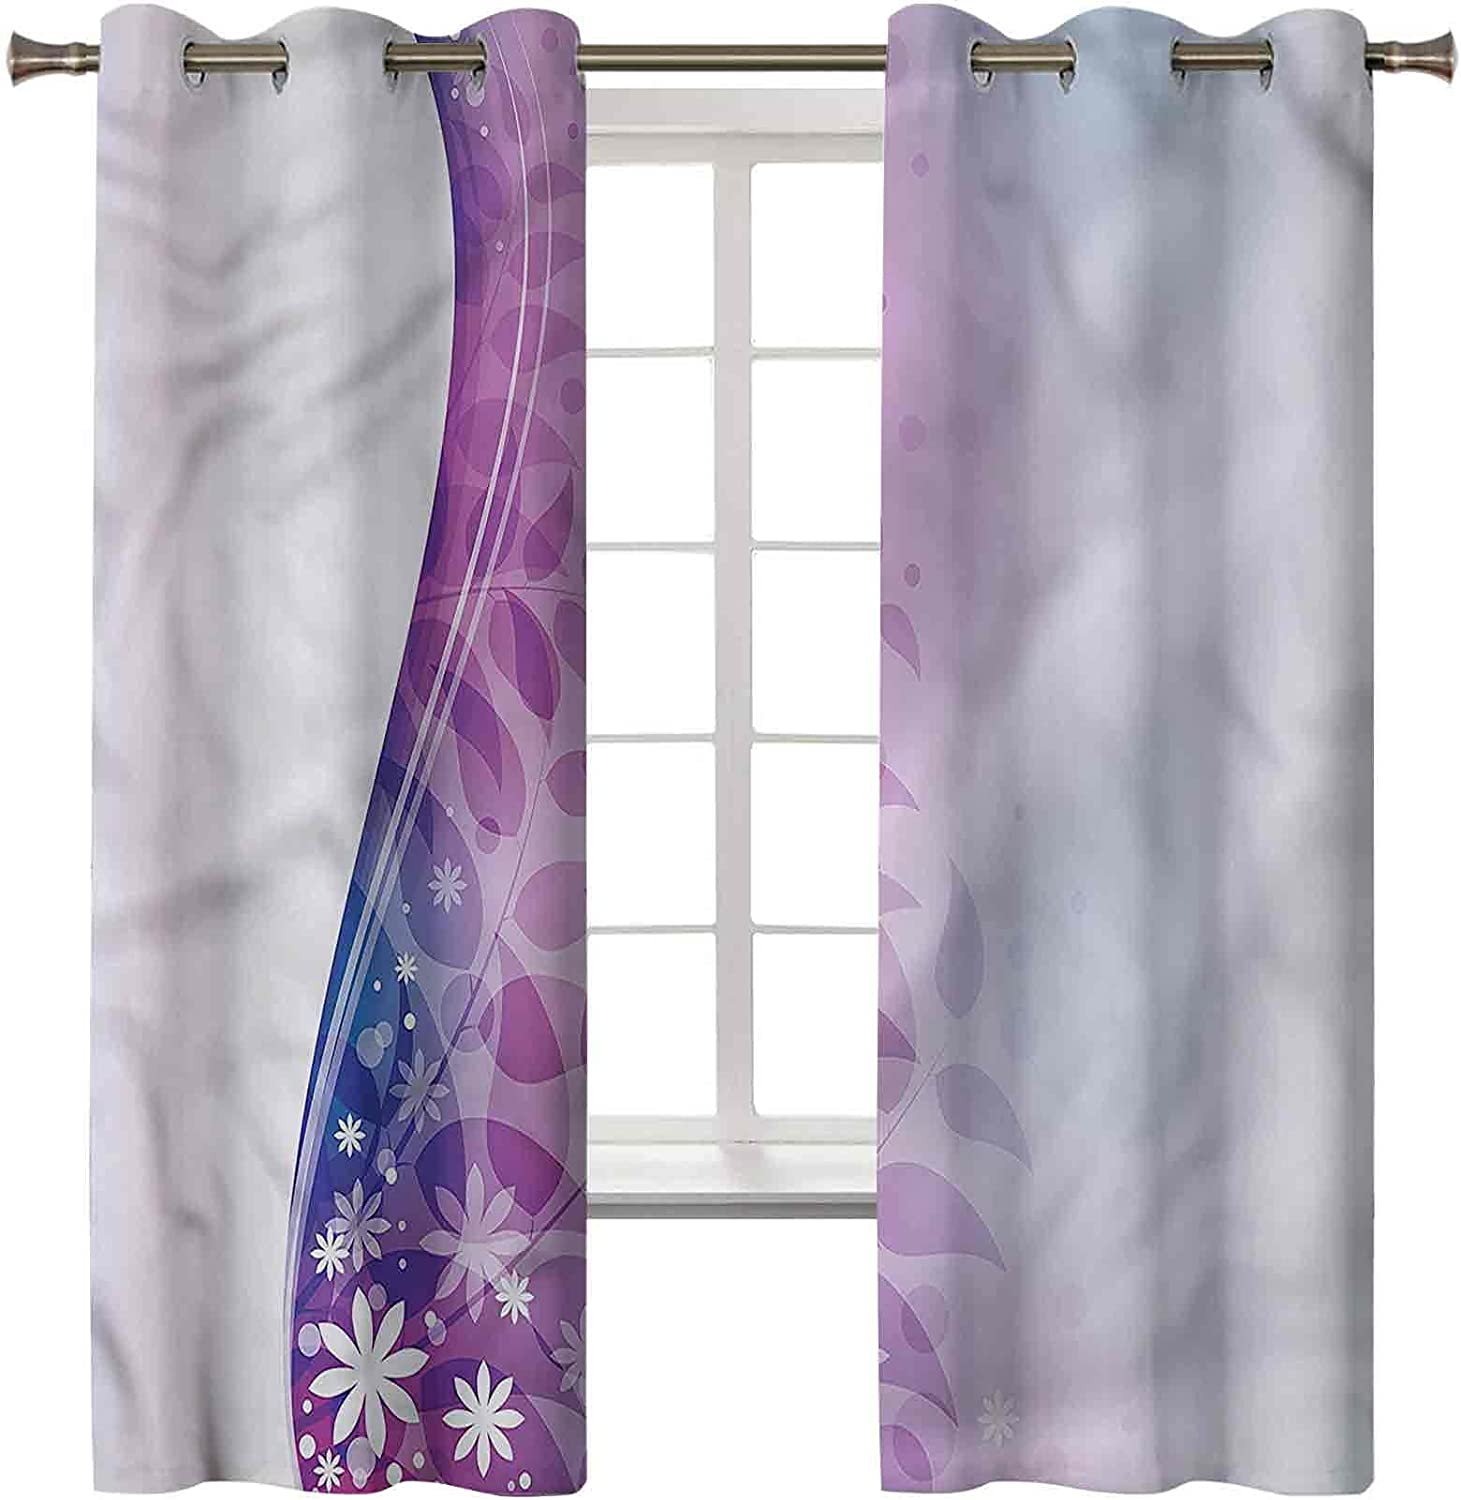 Violet Blackout Curtains for Bedroom Set 45L 38W x 2 Seasonal Wrap Max 58% OFF Introduction of Panels